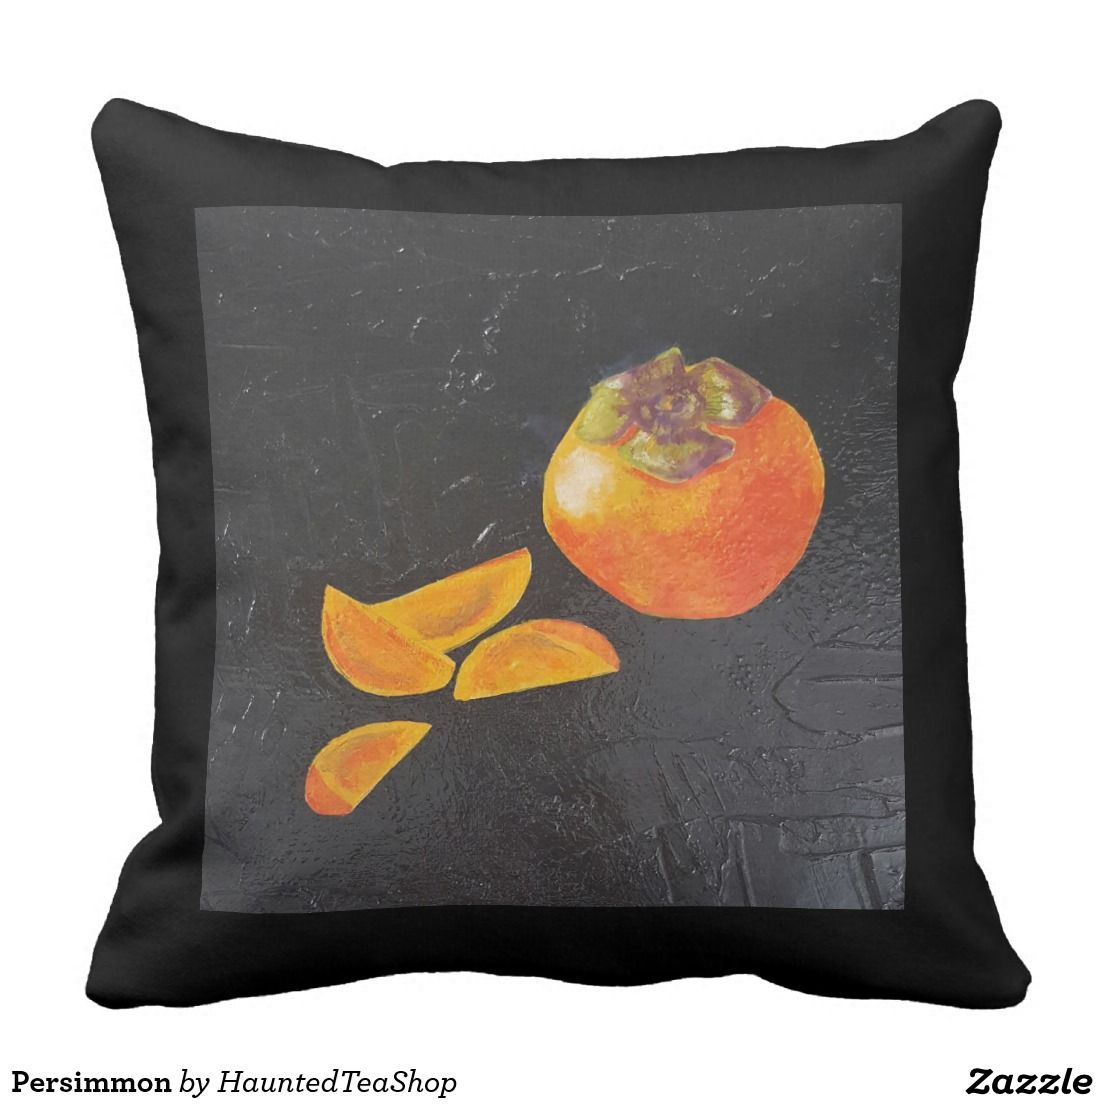 Persimmon pillow inspired by Japanese block prints.